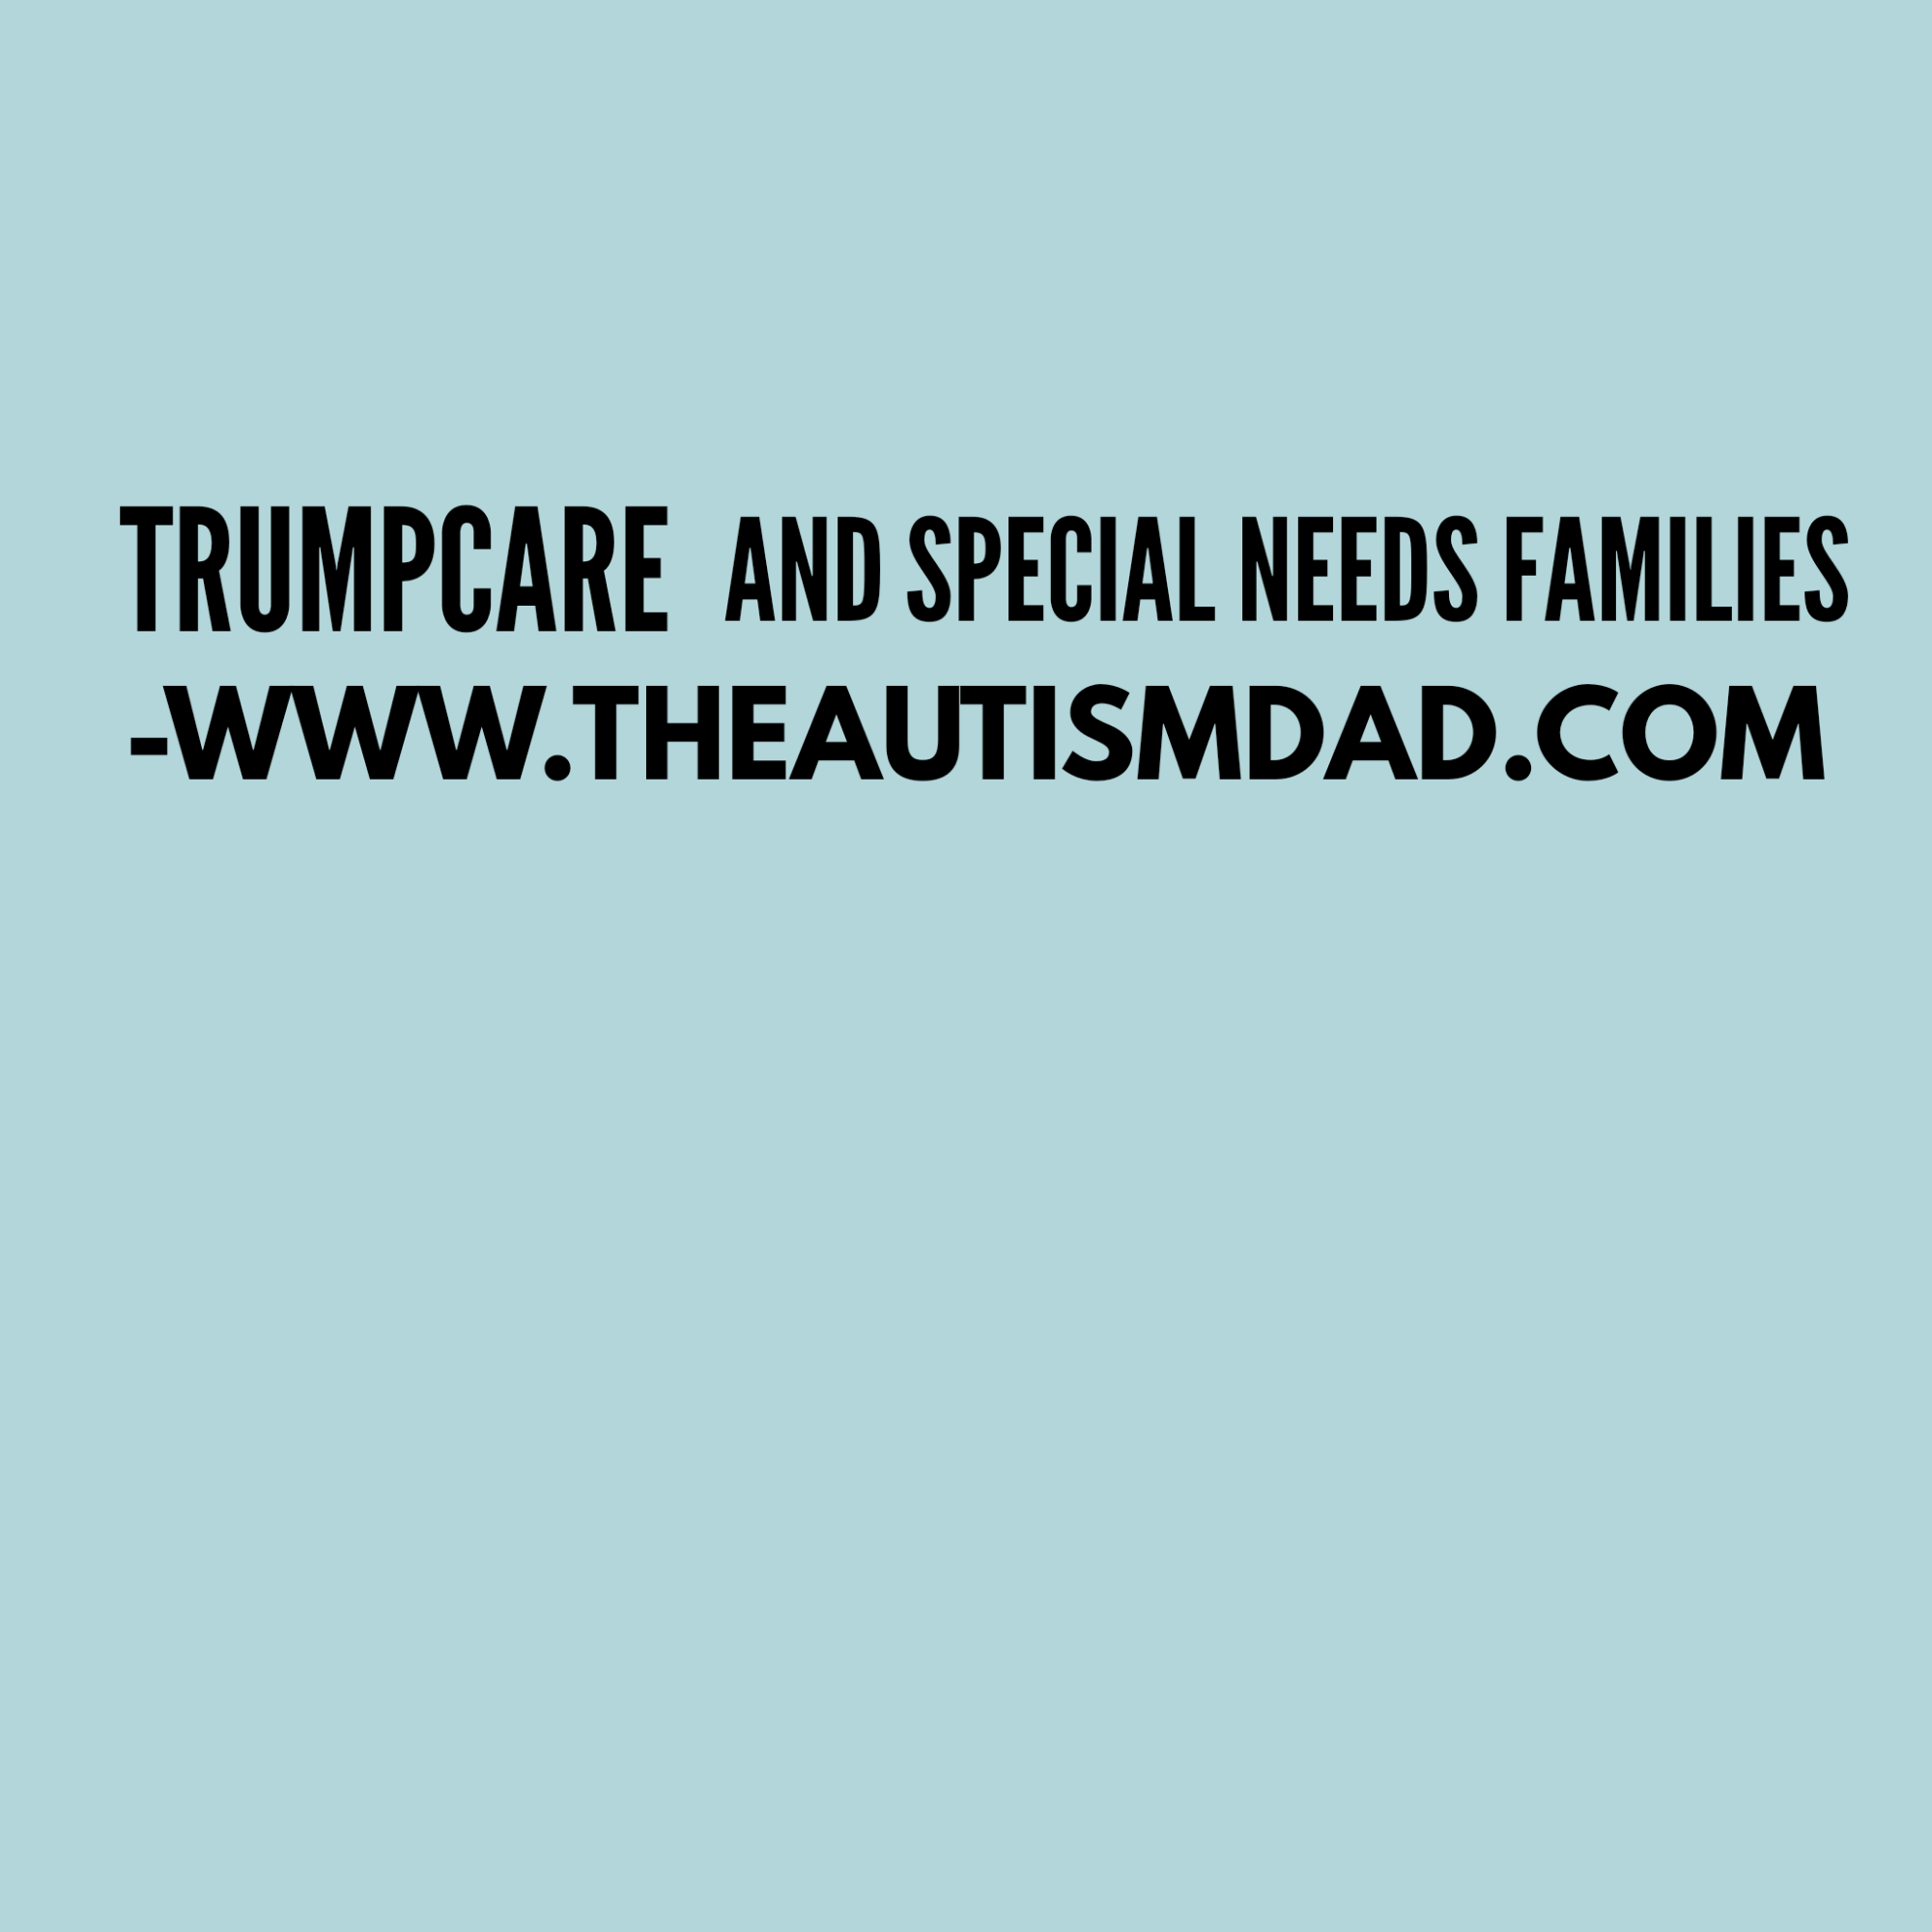 #Trumpcare and Special Needs families